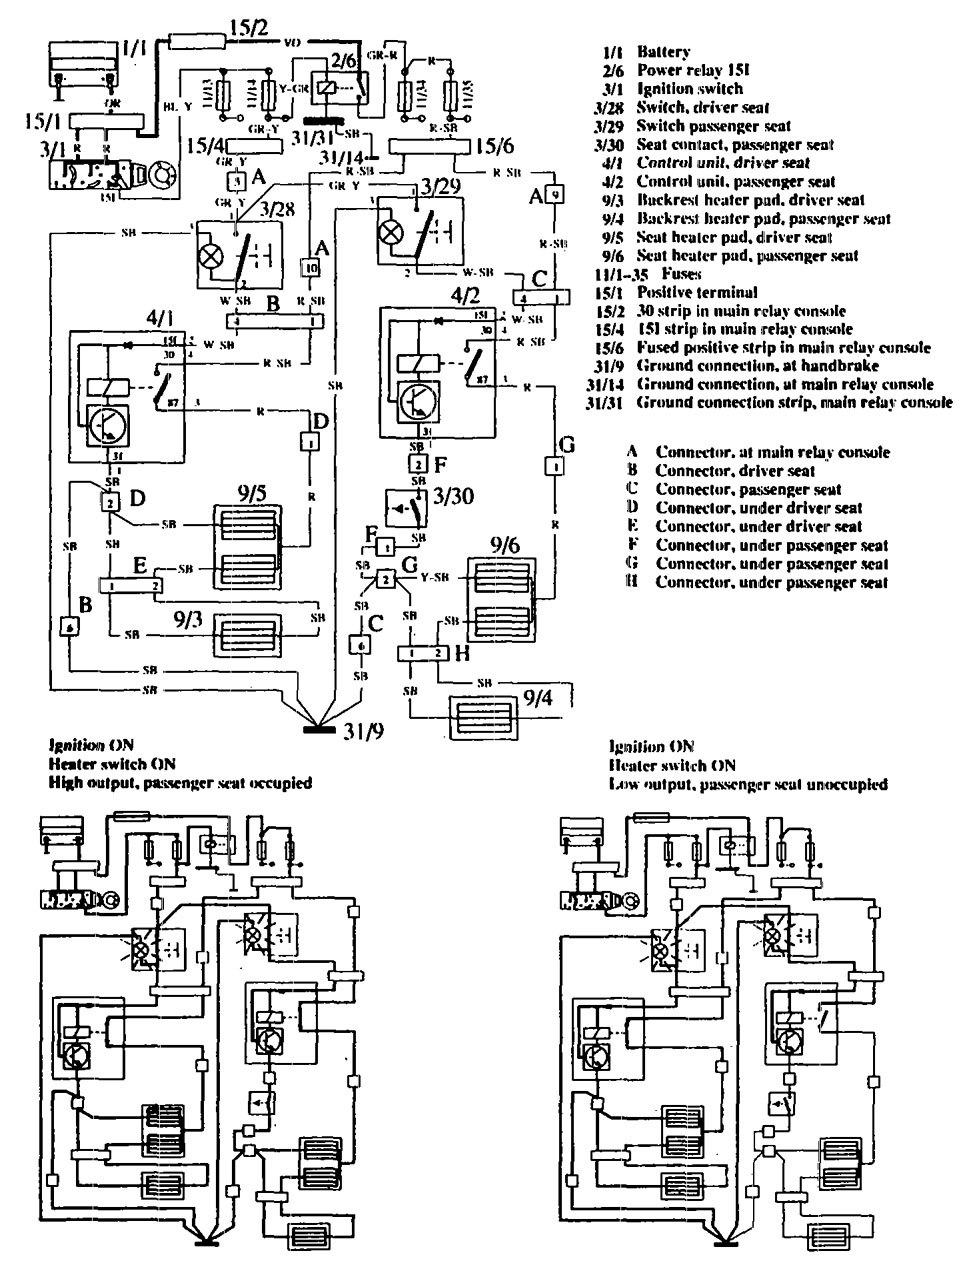 Volvo 760 (1990) - wiring diagrams - heated seats - Carknowledge.info | Volvo 760 Wiring Diagram |  | Carknowledge.info